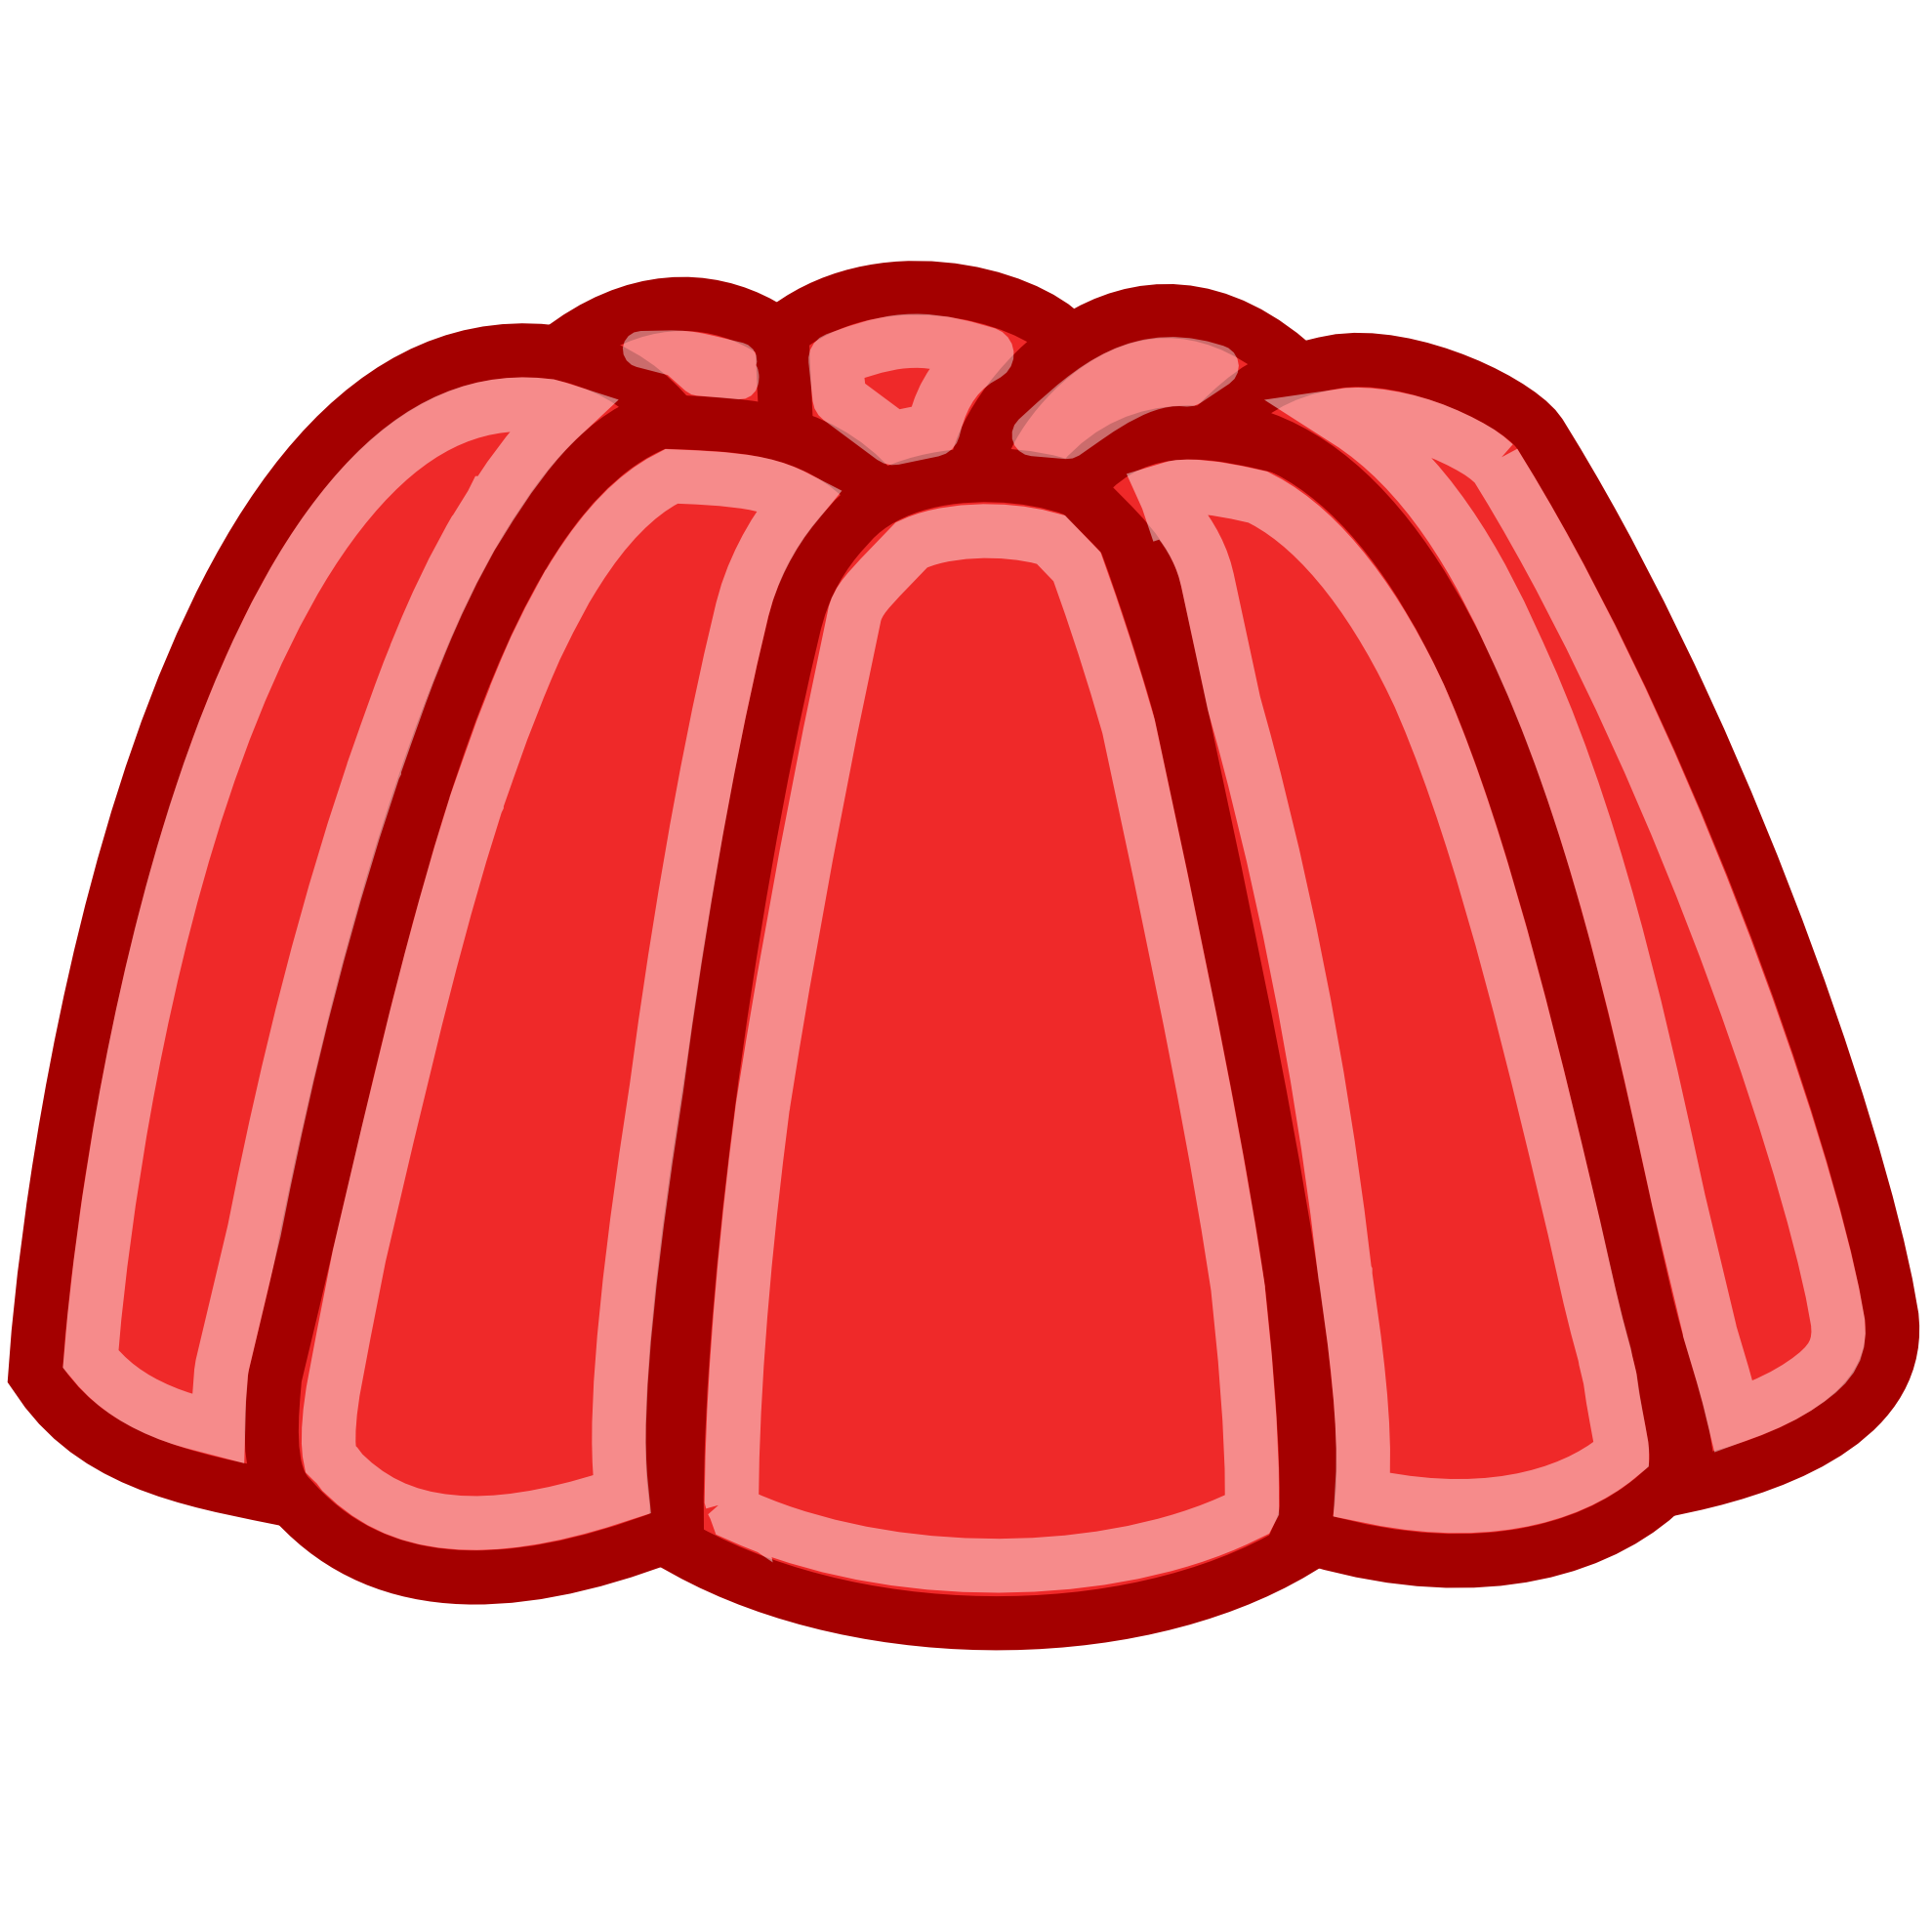 Jelly clipart #5, Download drawings